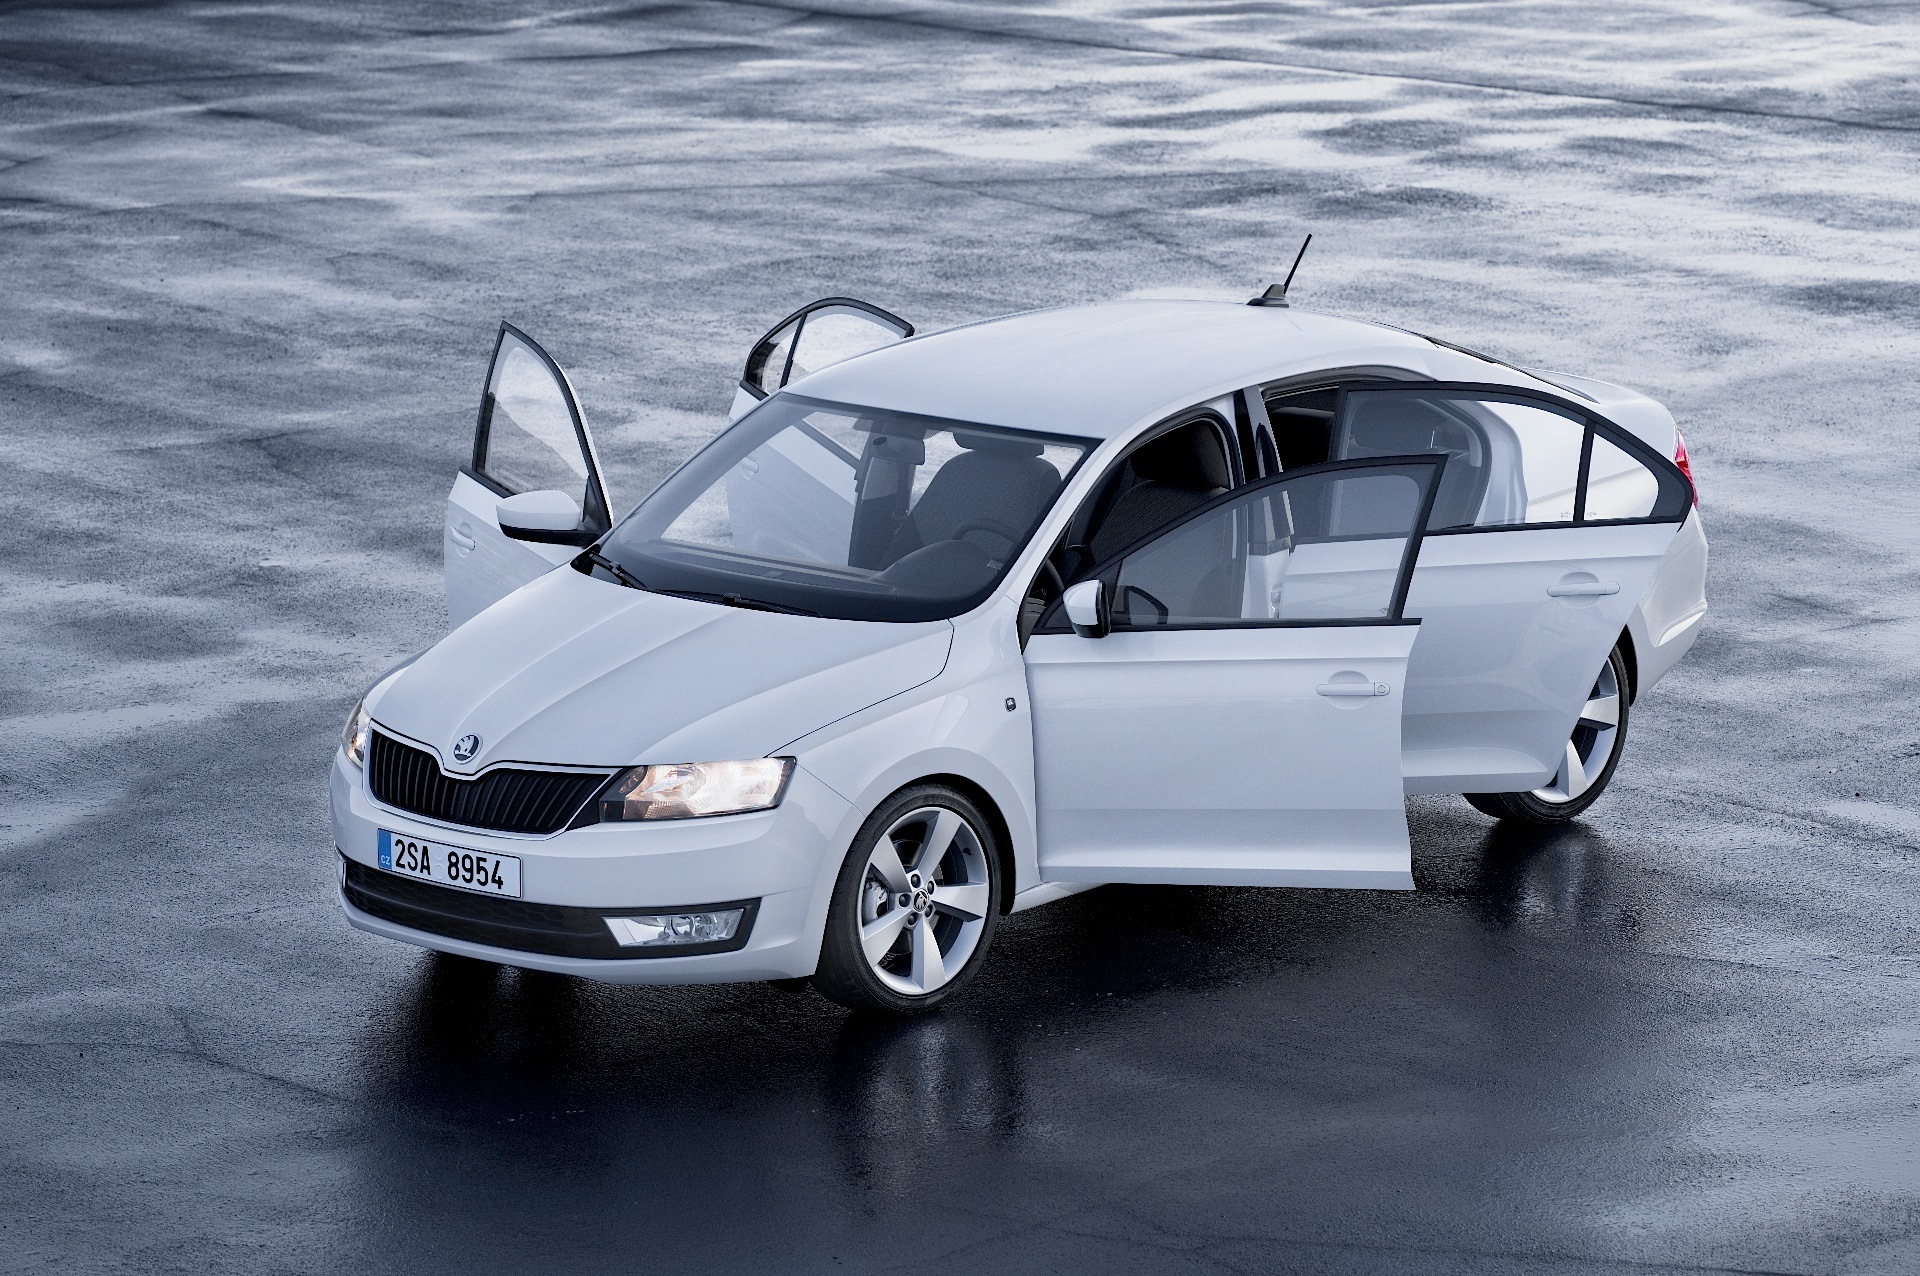 skoda rapid specs 2012 2013 2014 2015 2016 2017 2018 autoevolution. Black Bedroom Furniture Sets. Home Design Ideas